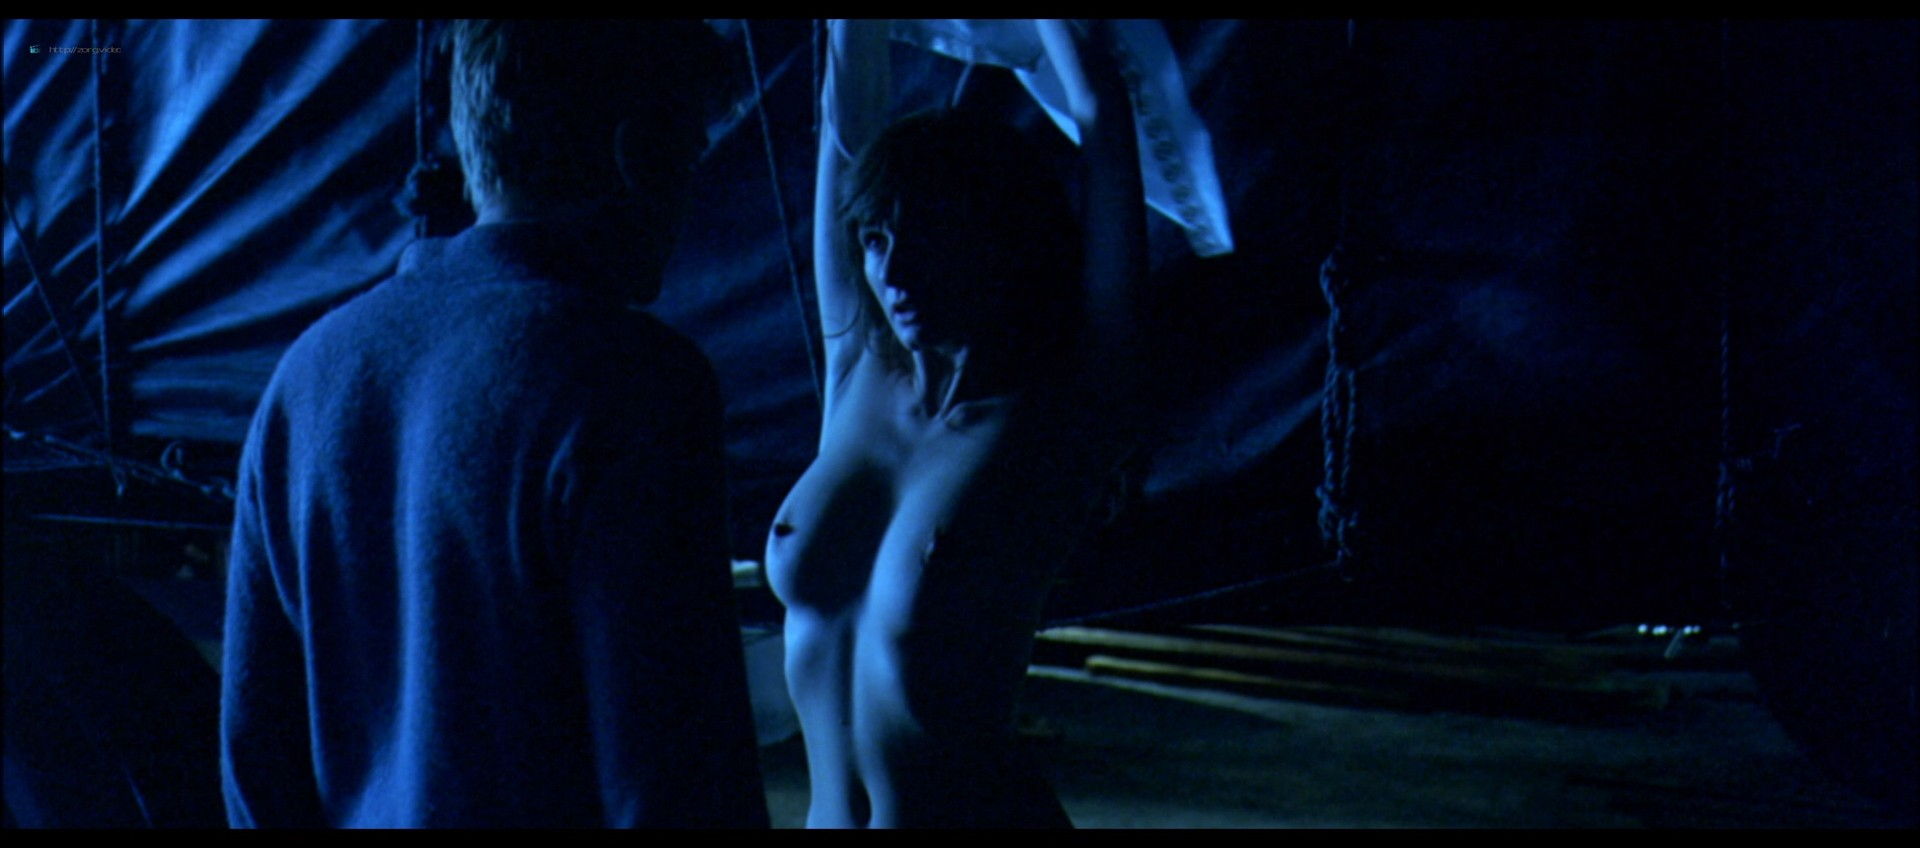 Emily Mortimer nude Tilda Swinton and Pauline Turner nude full frontal - Young Adam (2003) HD 1080p BluRay (18)